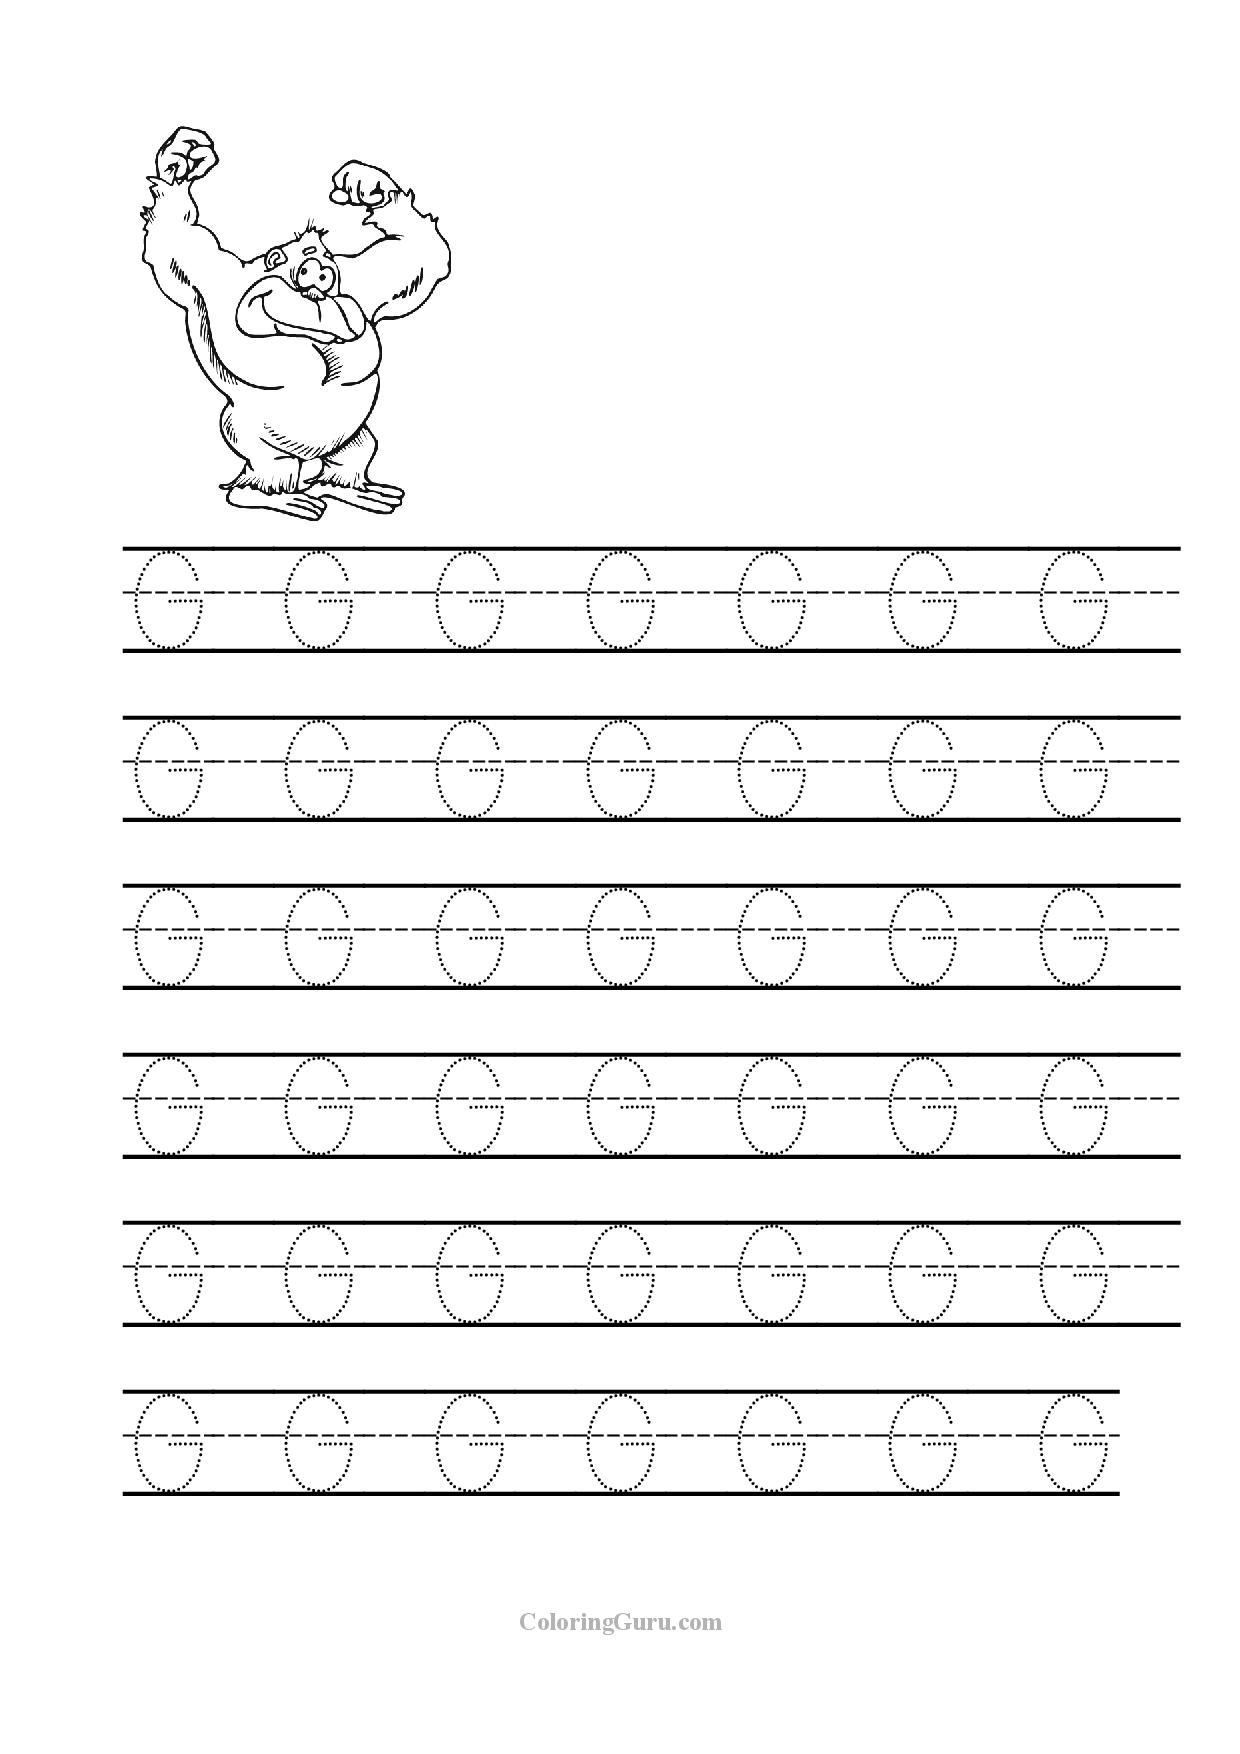 Free Printable Tracing Letter G Worksheets For Preschool for G Letter Tracing Worksheet